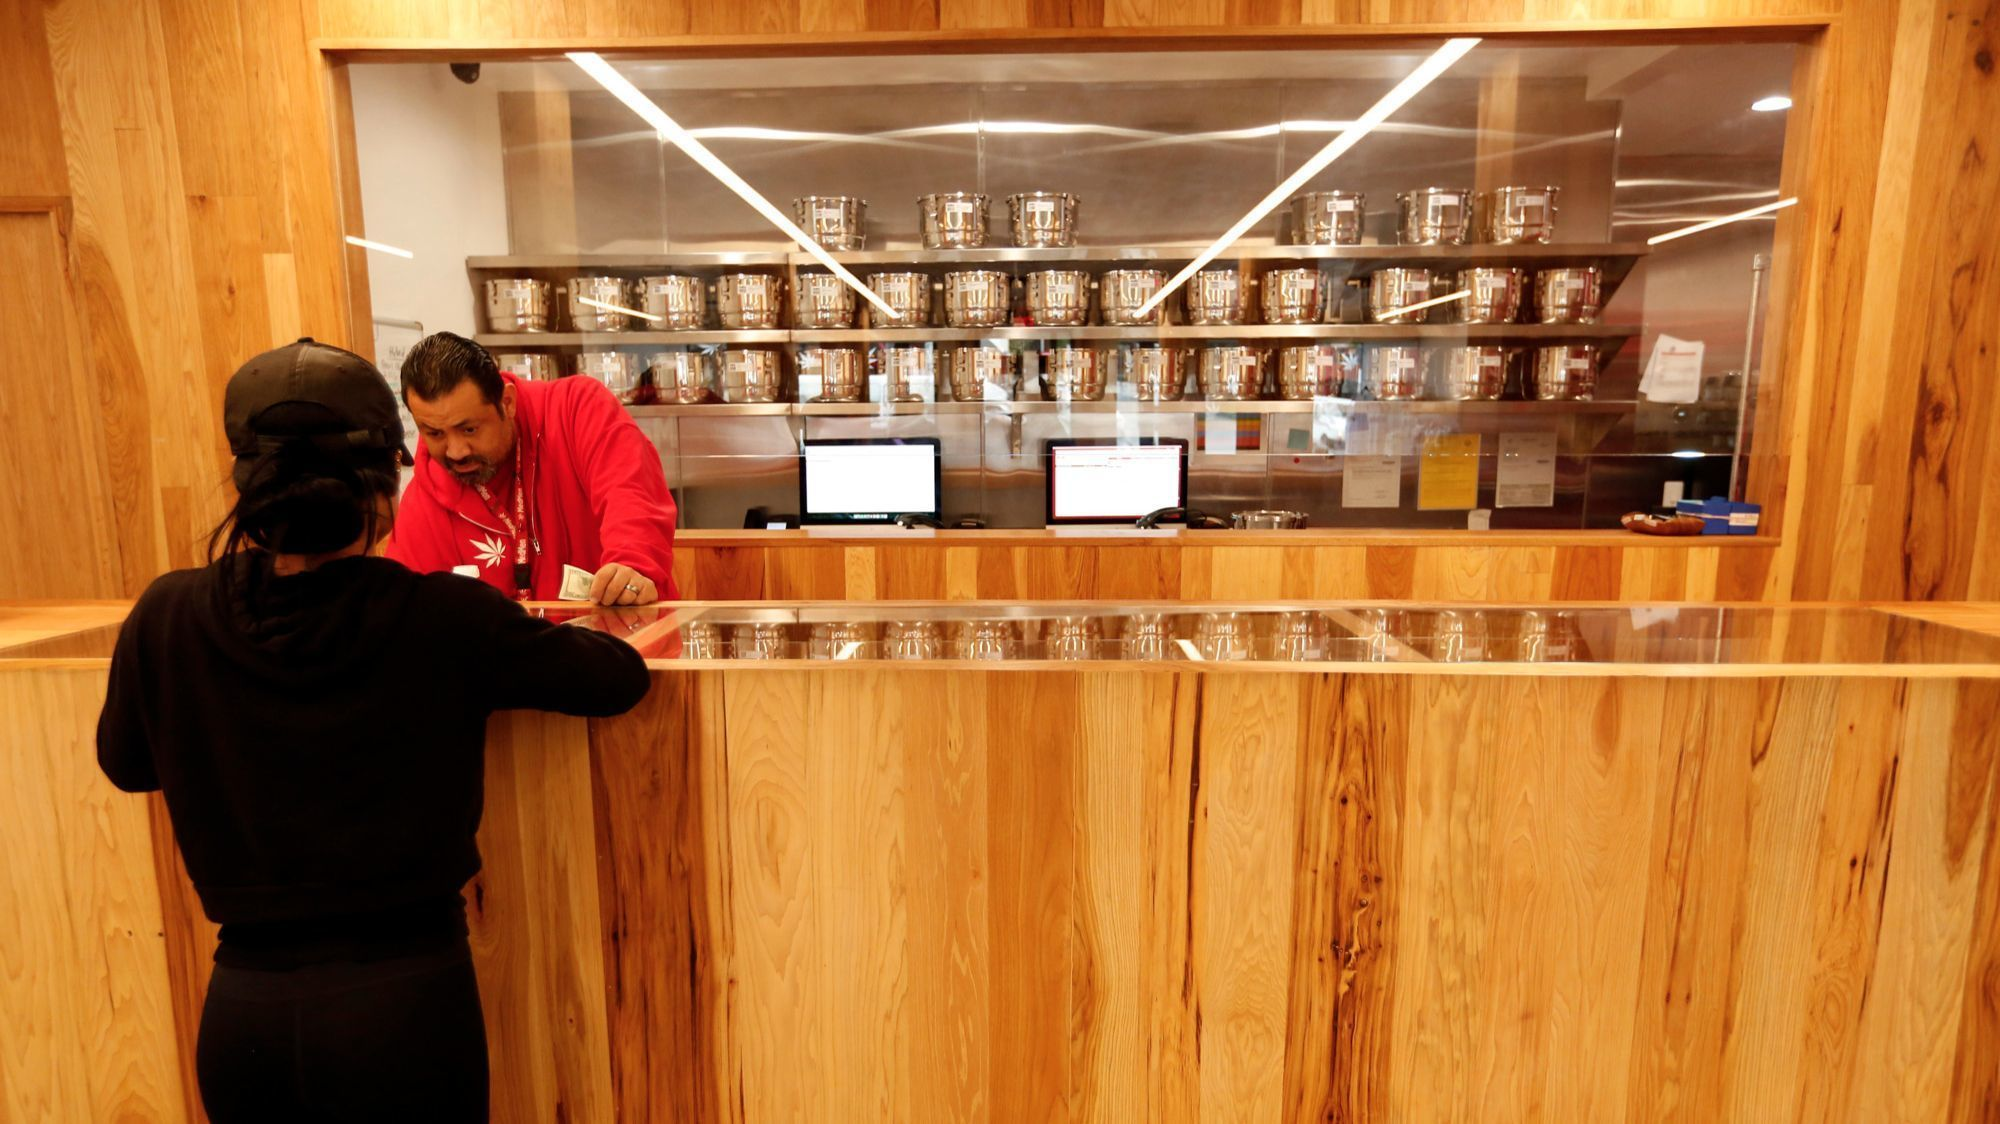 Emanuel Garcia fills a customer's order at MedMen cannabis dispensary in Los Angeles last year. (Los Angeles Times)